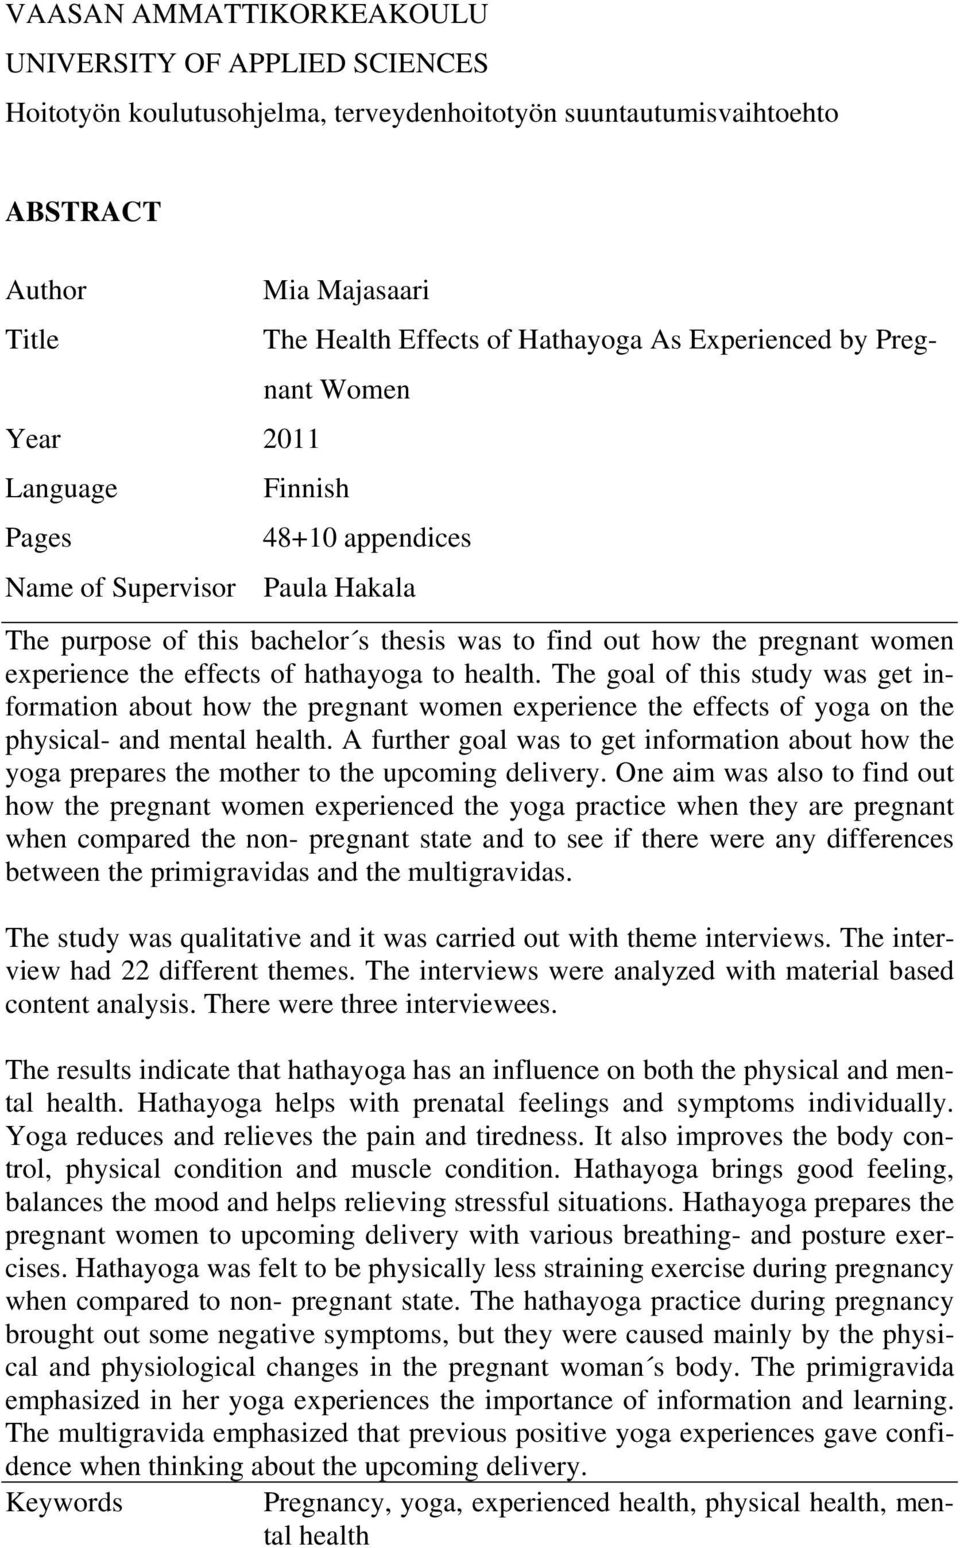 the effects of hathayoga to health. The goal of this study was get information about how the pregnant women experience the effects of yoga on the physical- and mental health.